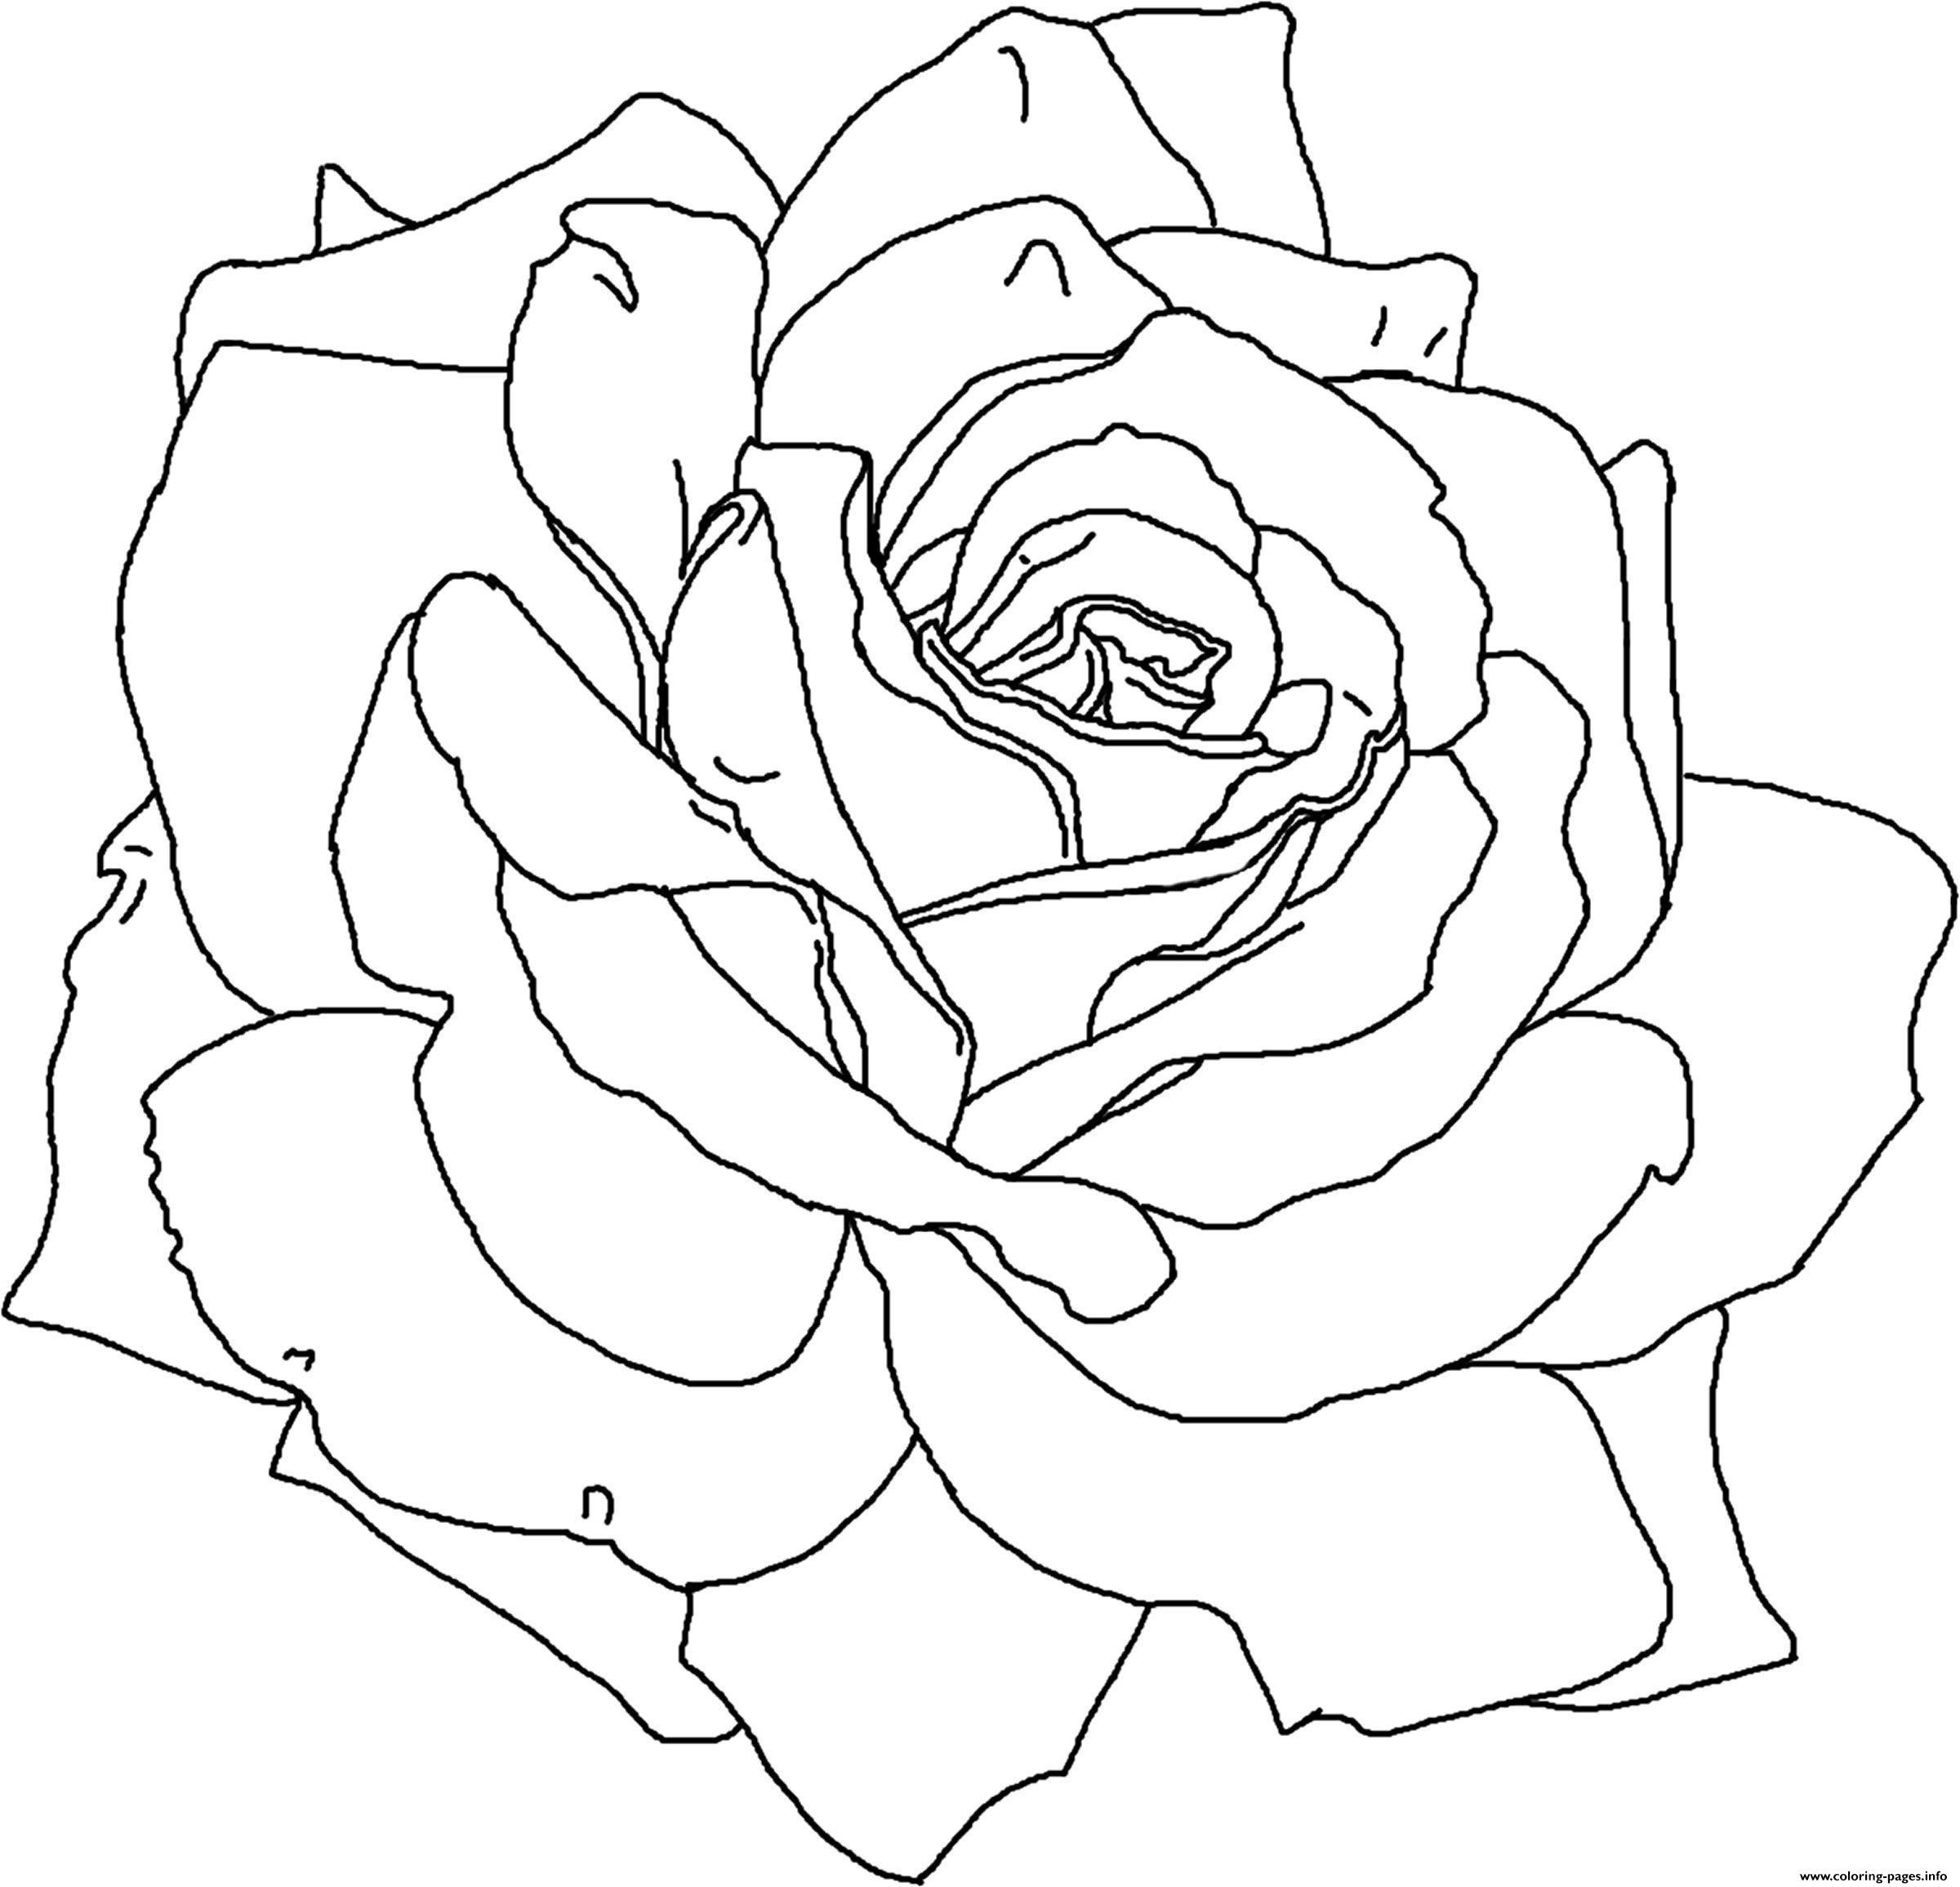 Rose Flower Cute Coloring Pages Printable